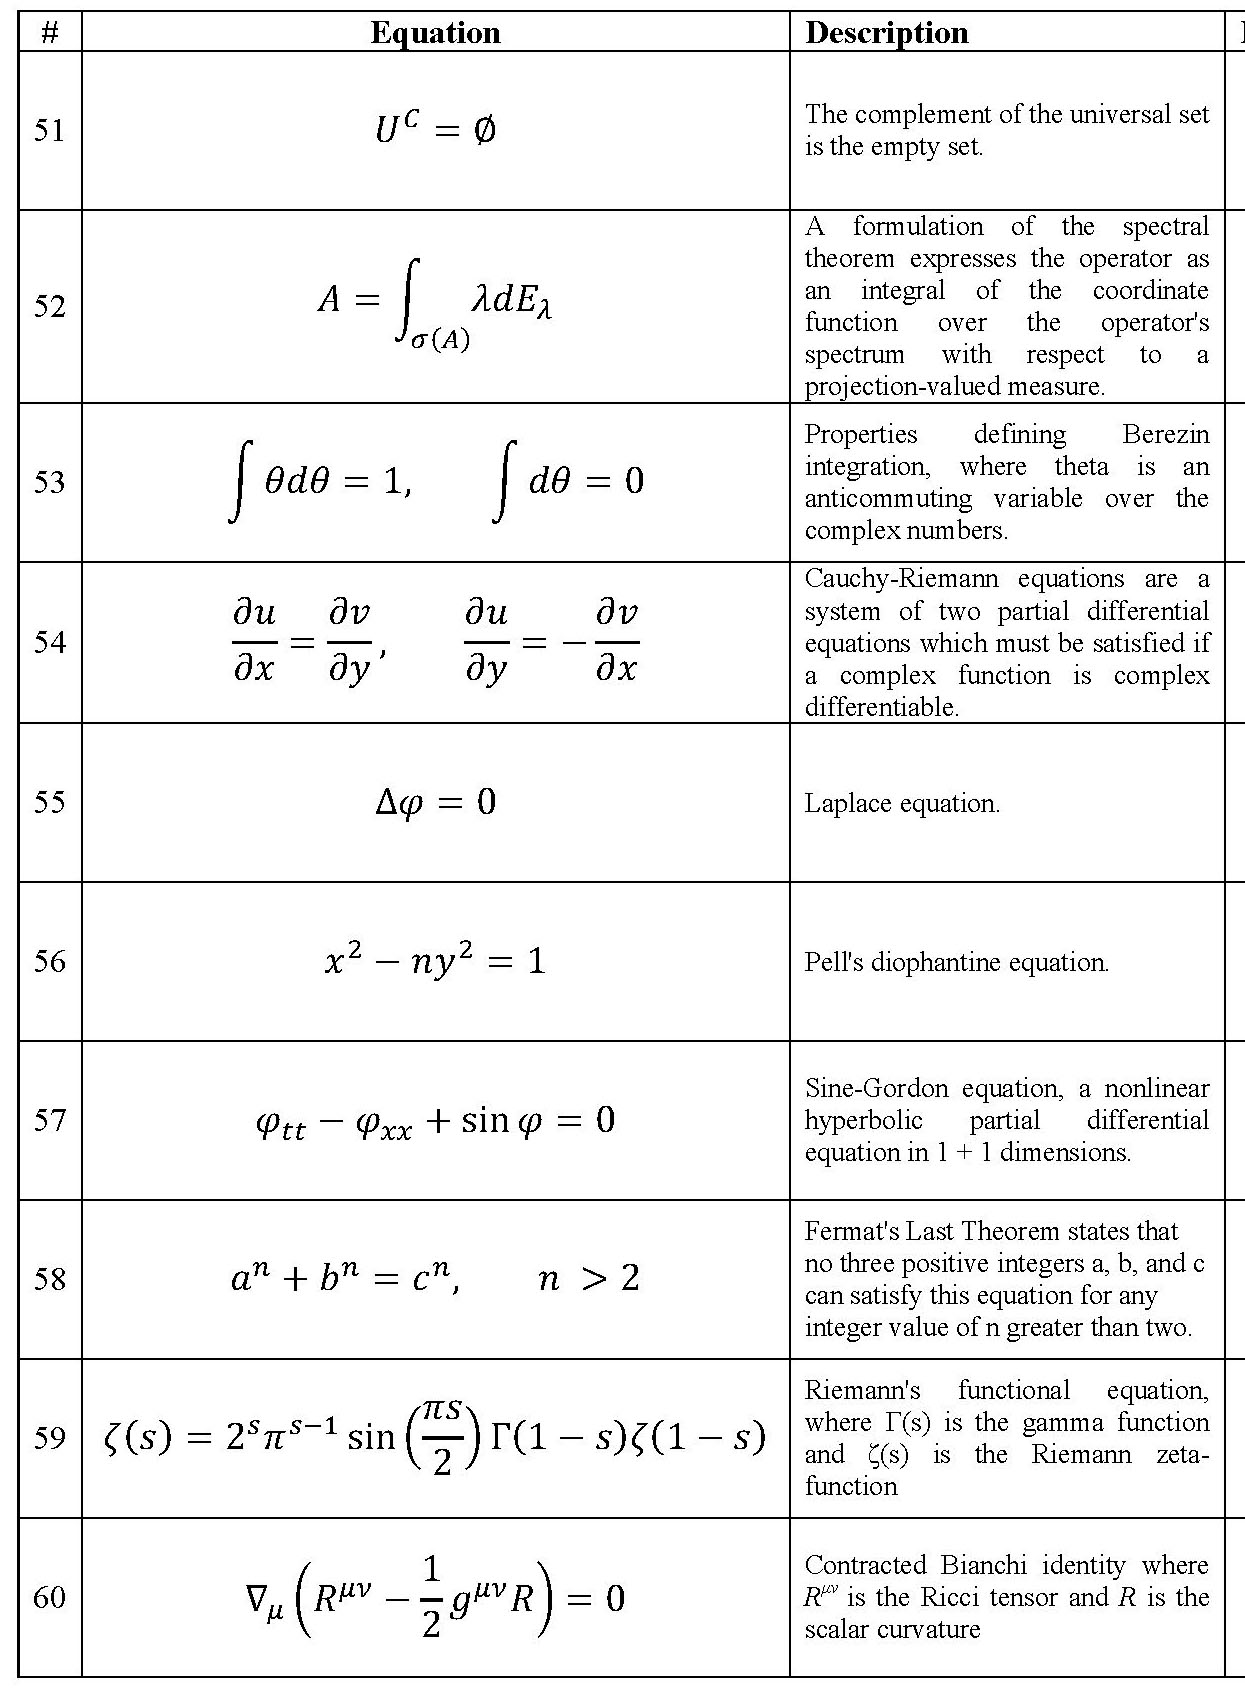 an analysis of functions in mathematics But we are not going to look at specific functions instead we will look at the general idea of a function names first, it is useful to give a function a name the most common name is f, but we can have other names like g or even  marmalade if we want but let's use f: f(x) = x^2 we say f of x equals x squared.